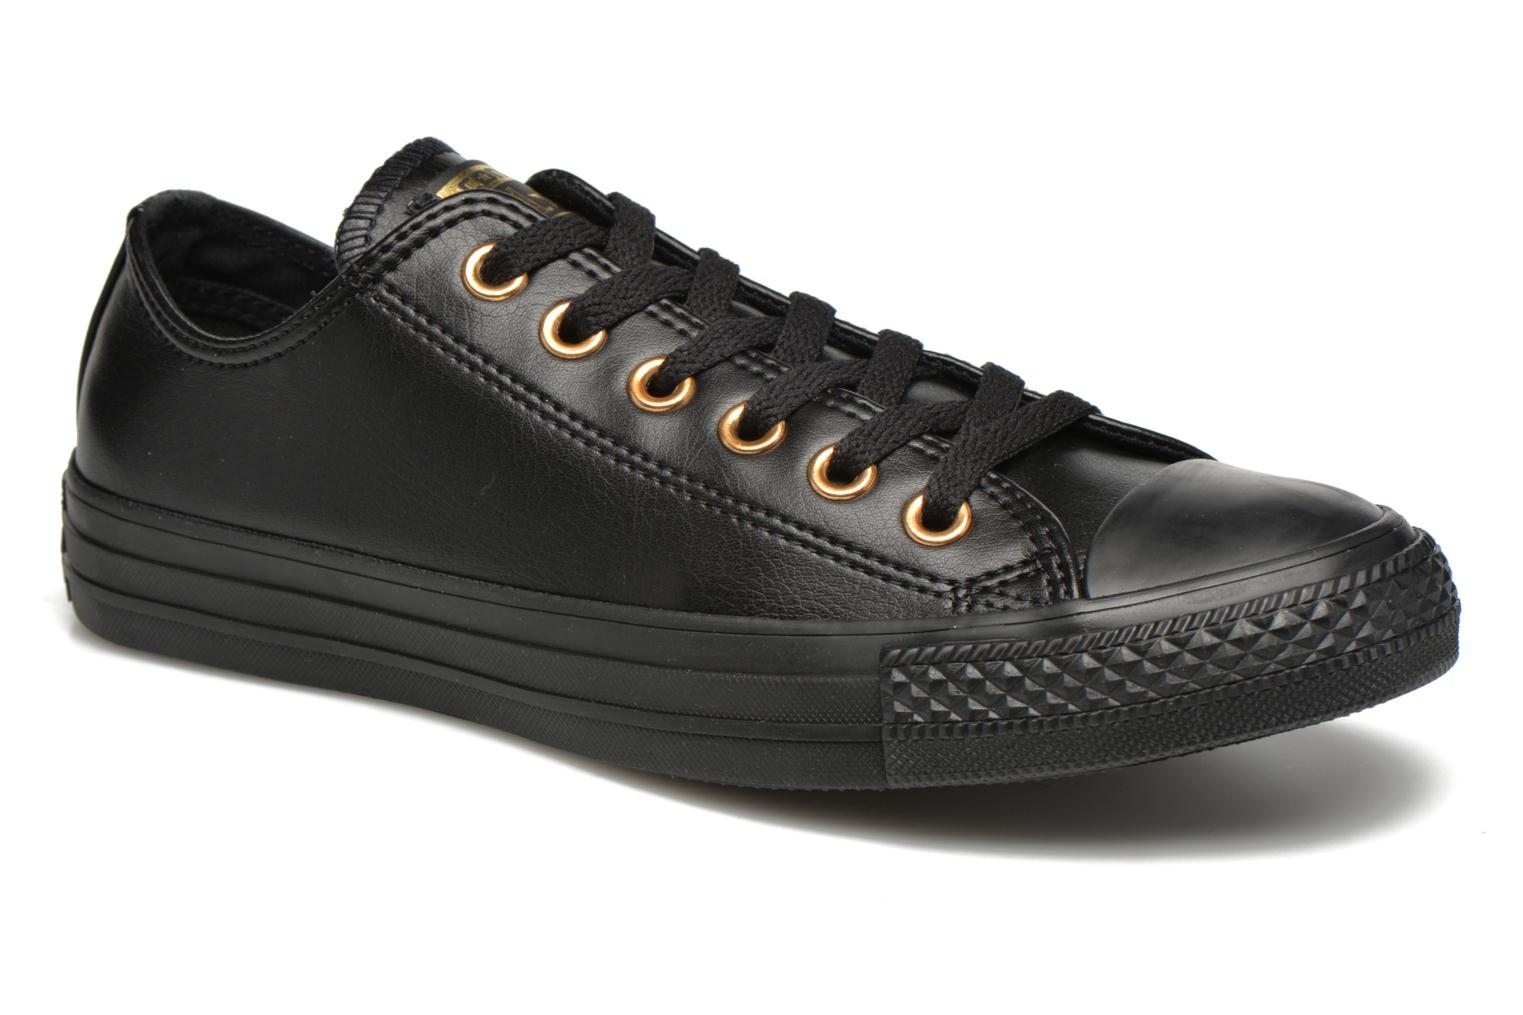 Converse Chuck Taylor All Star Ox Craft SL Negro faJdXbuq